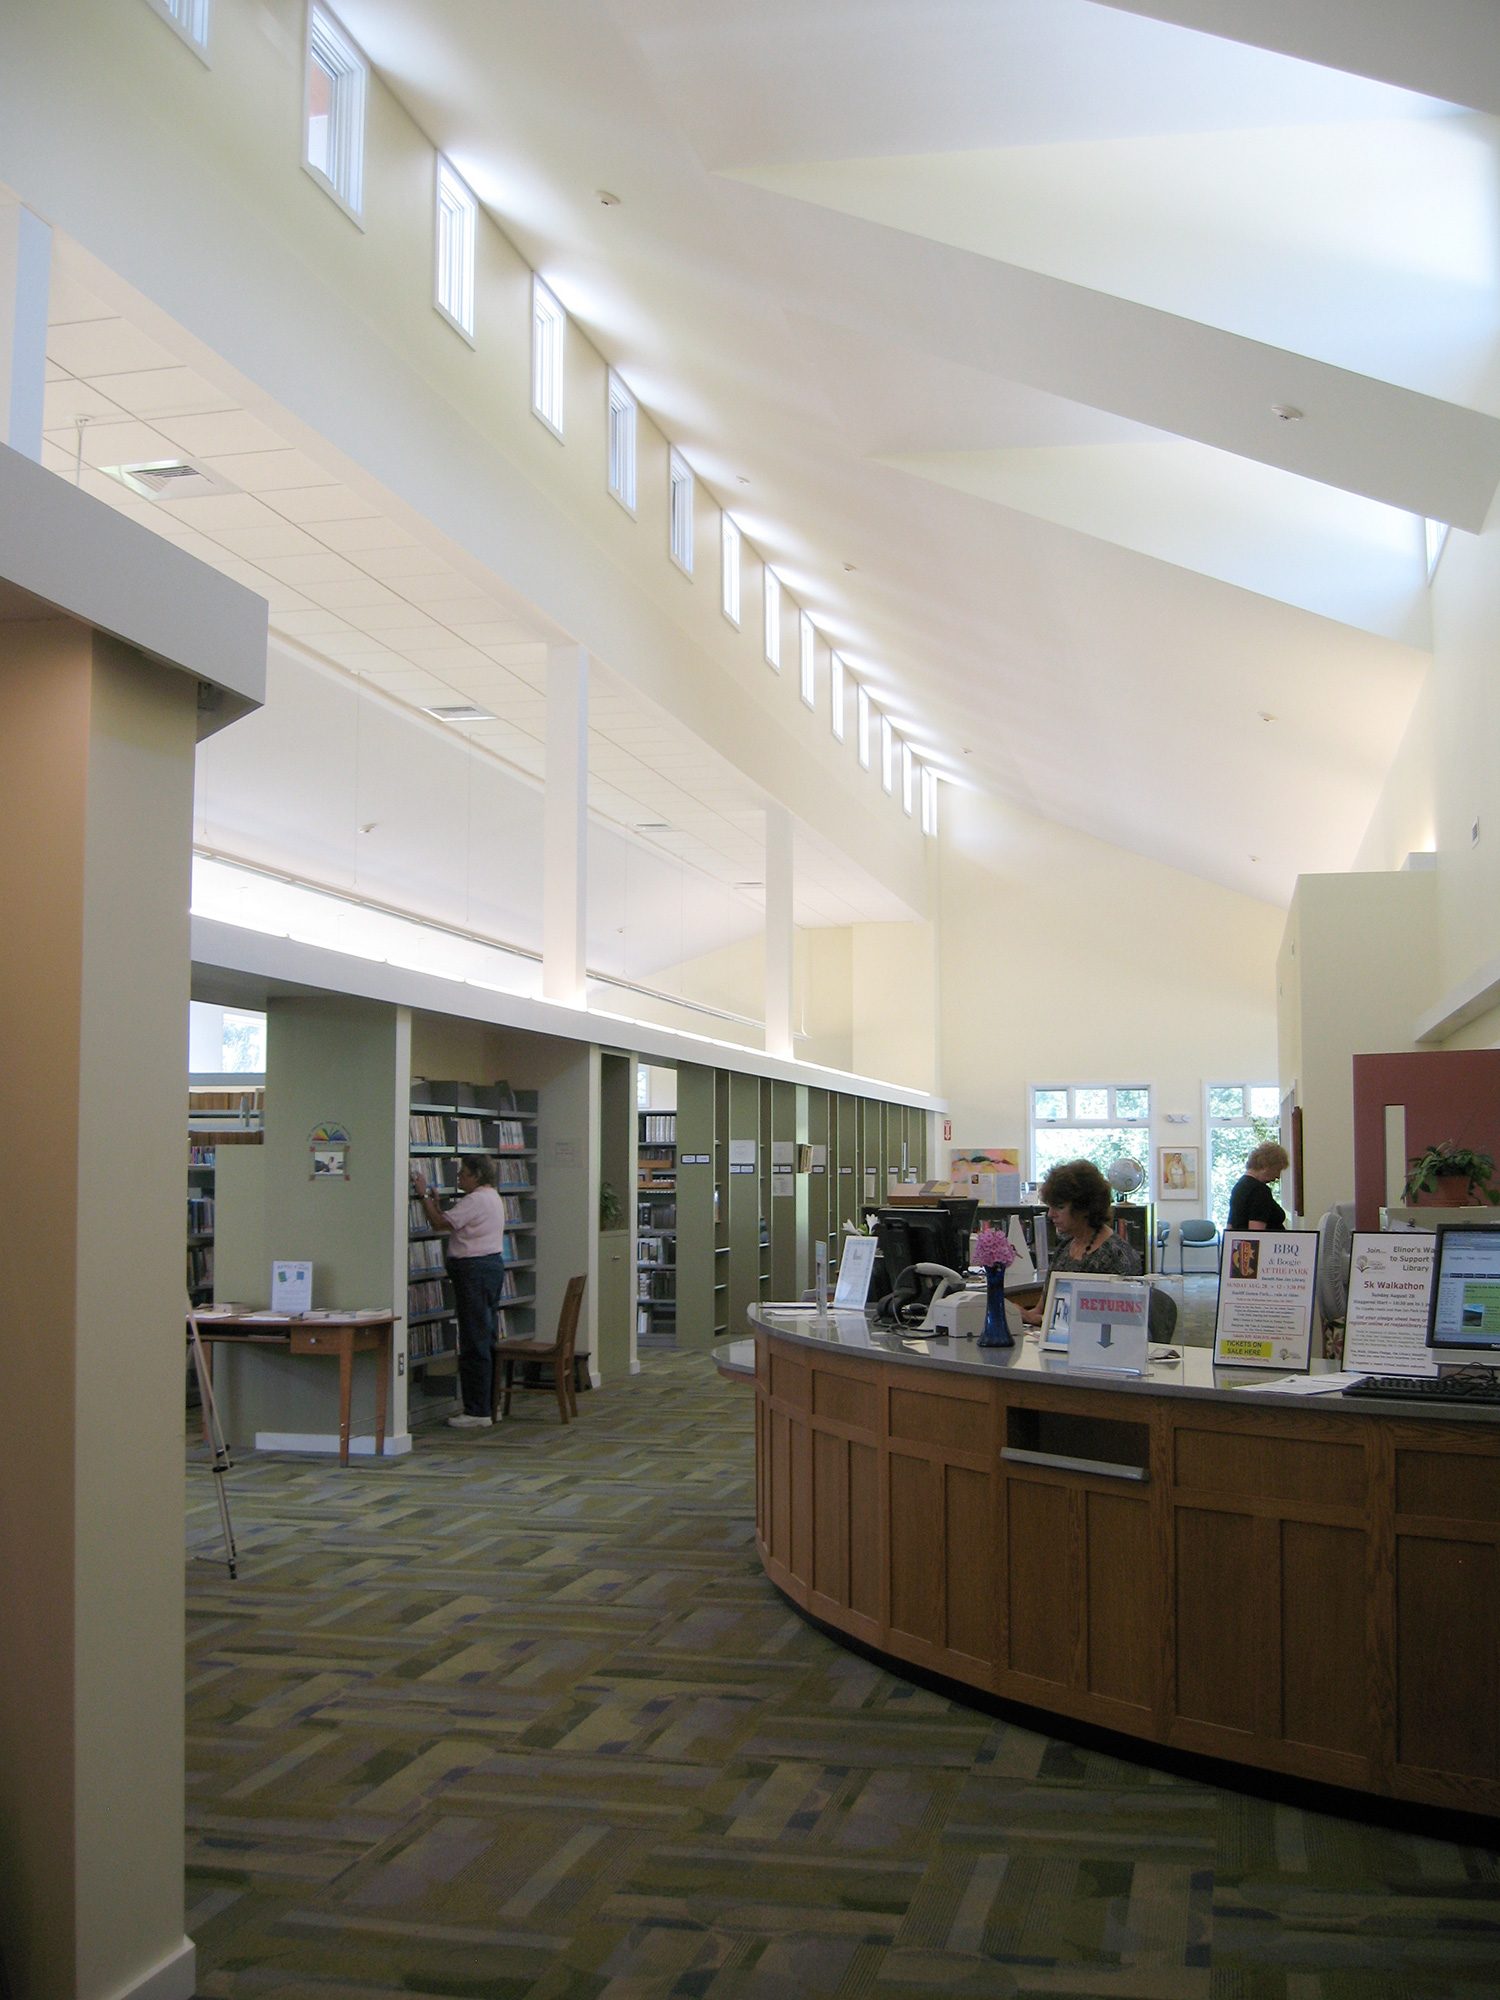 Roe Jan Library interior showing the circulation desk we built. Copake, NY.